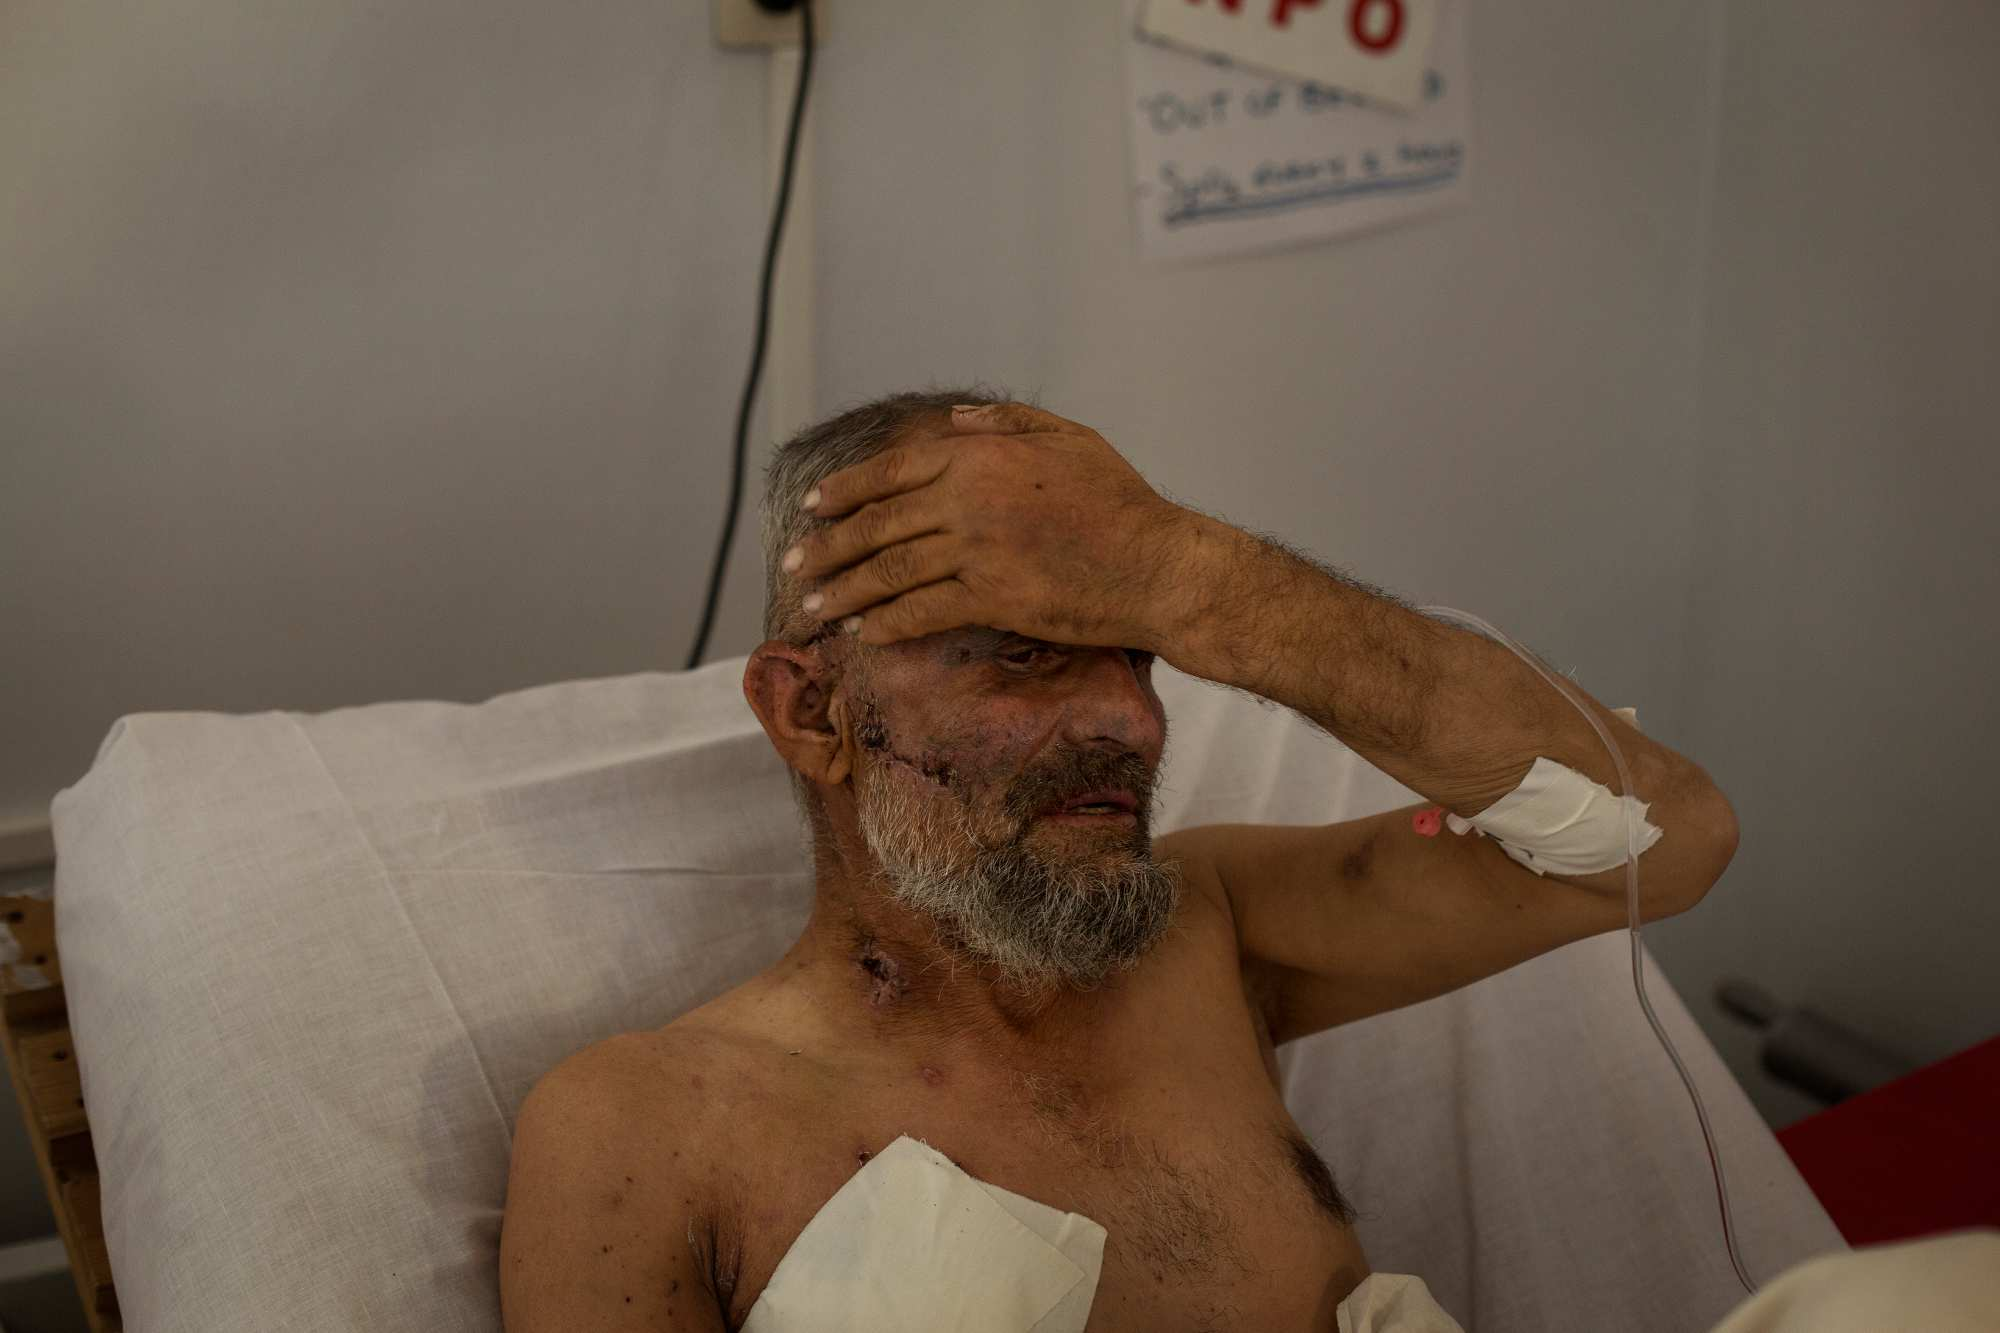 Kabal, 65, from Ghazni, who suffered multiple shell injuries, rests in bed.